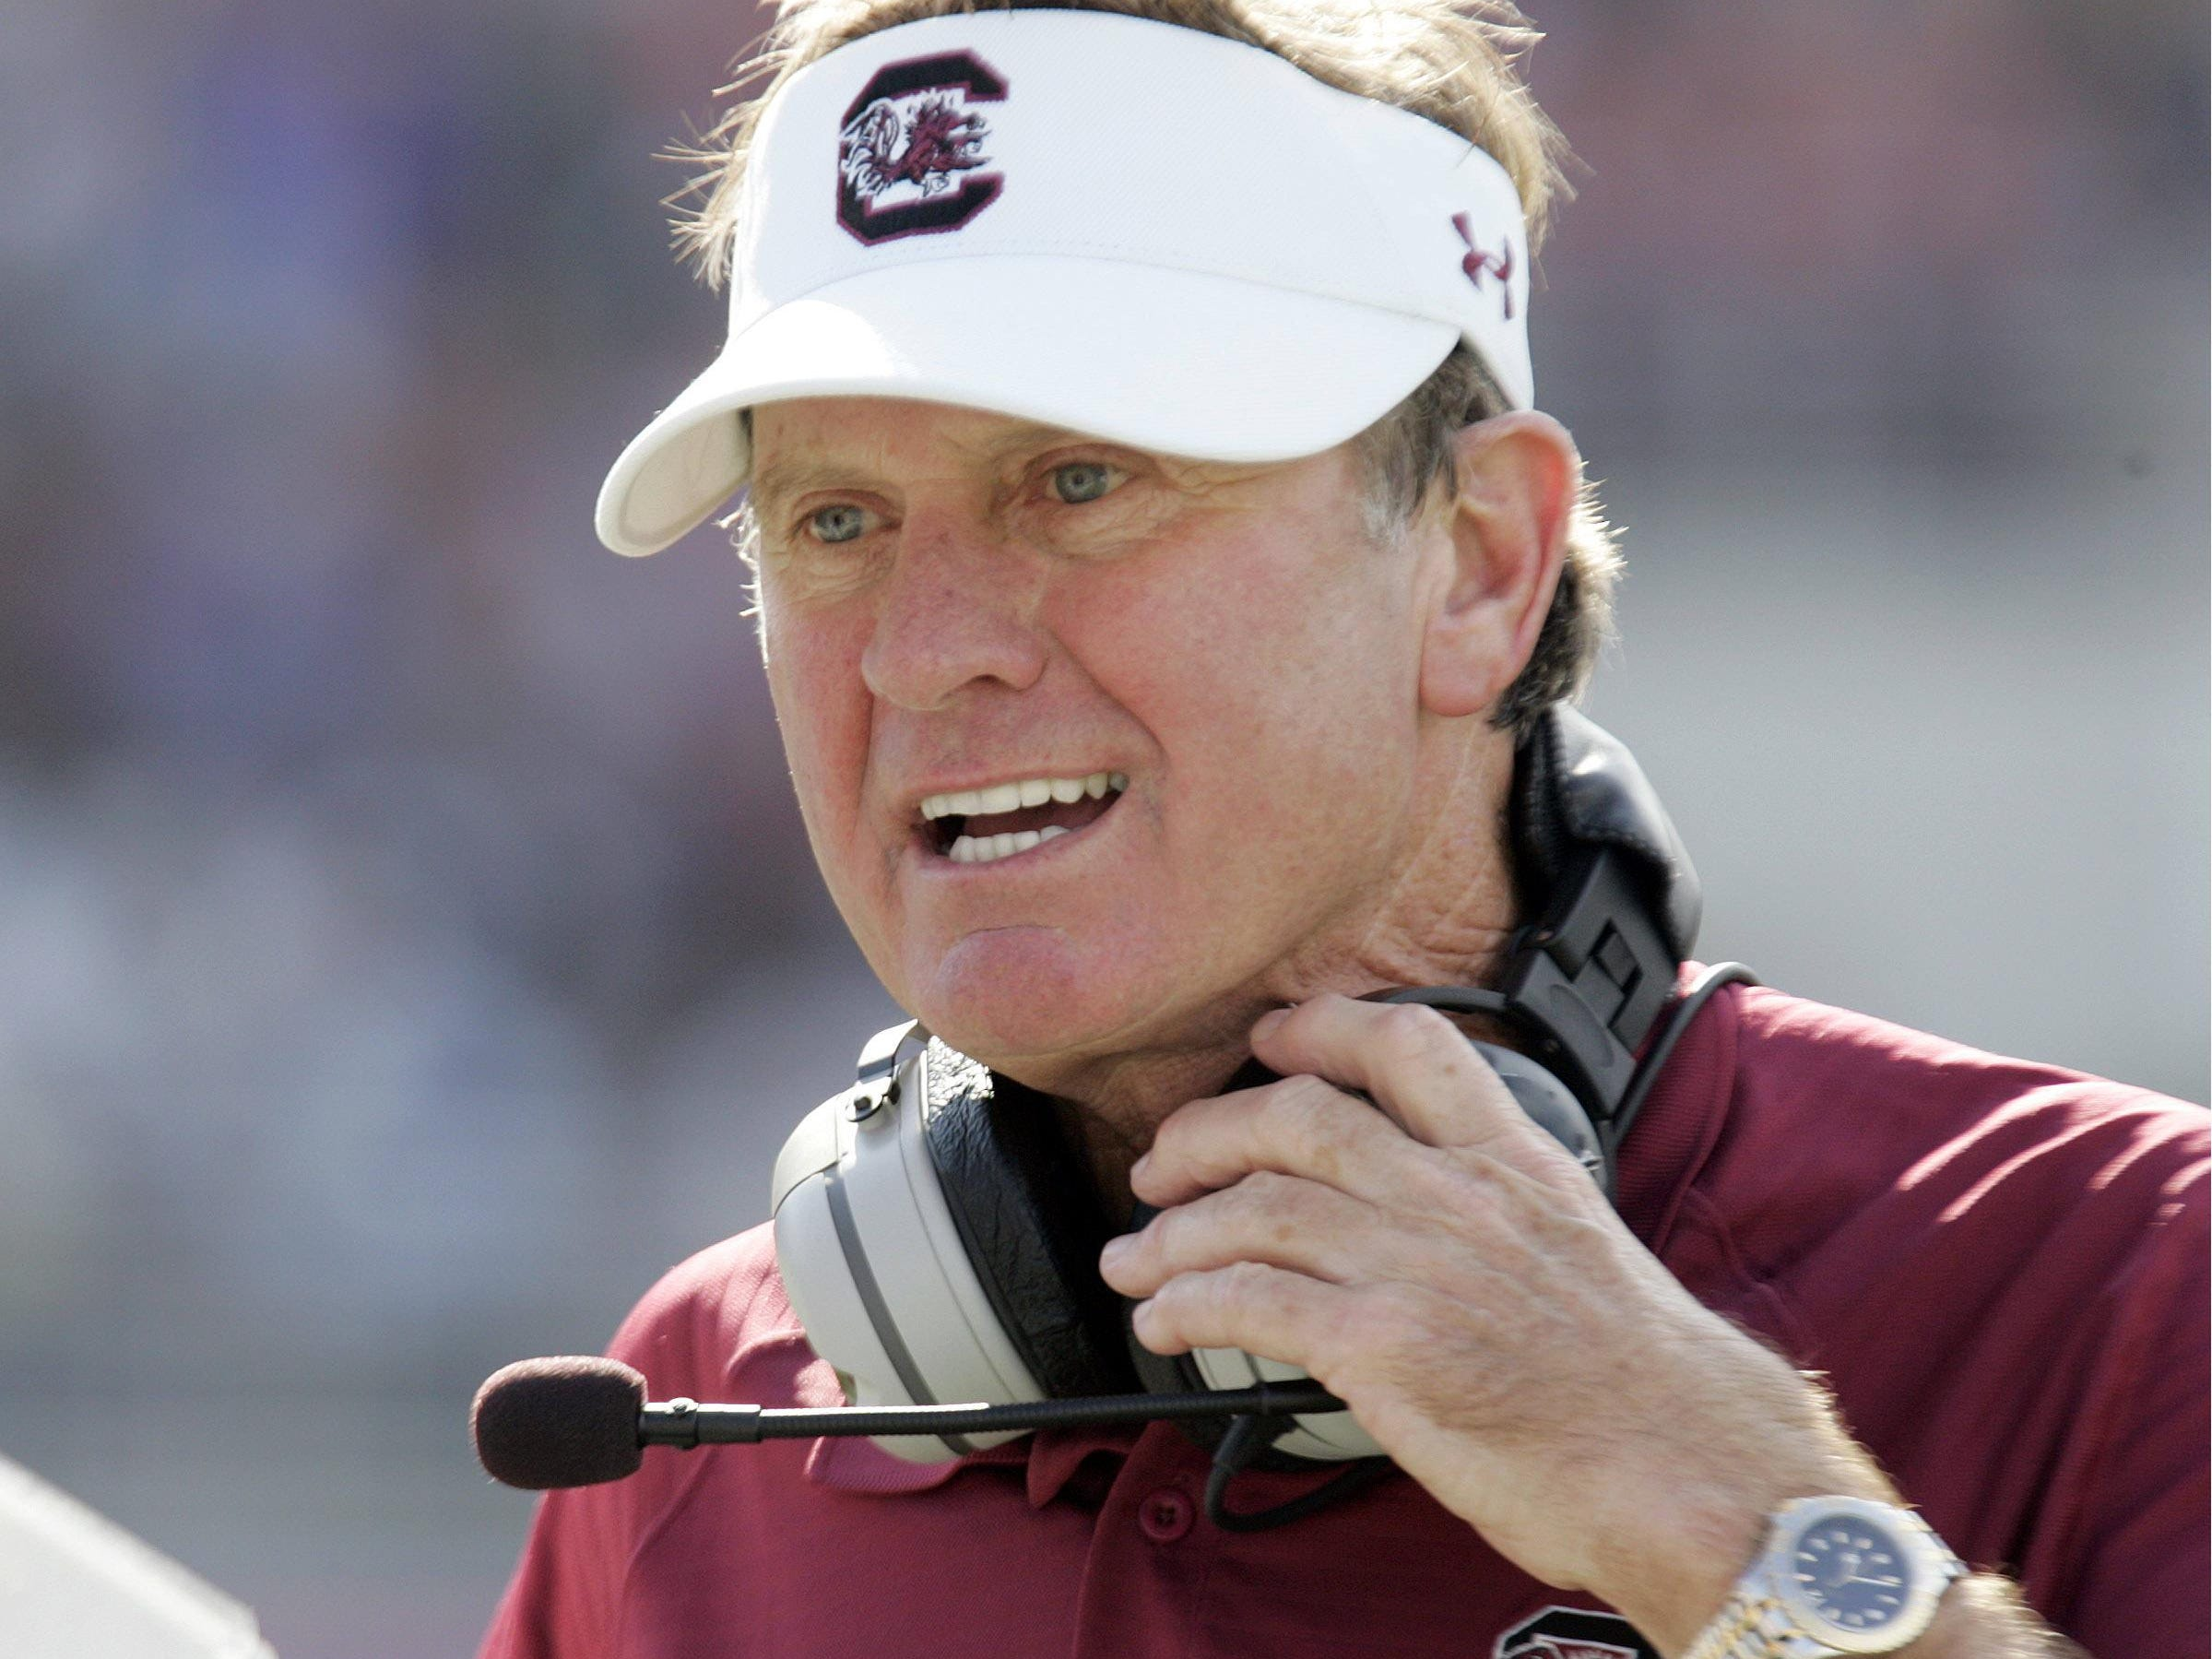 Steve Spurrier is pleased with his defense early in fall camp, but believes the offense remains unsettled.